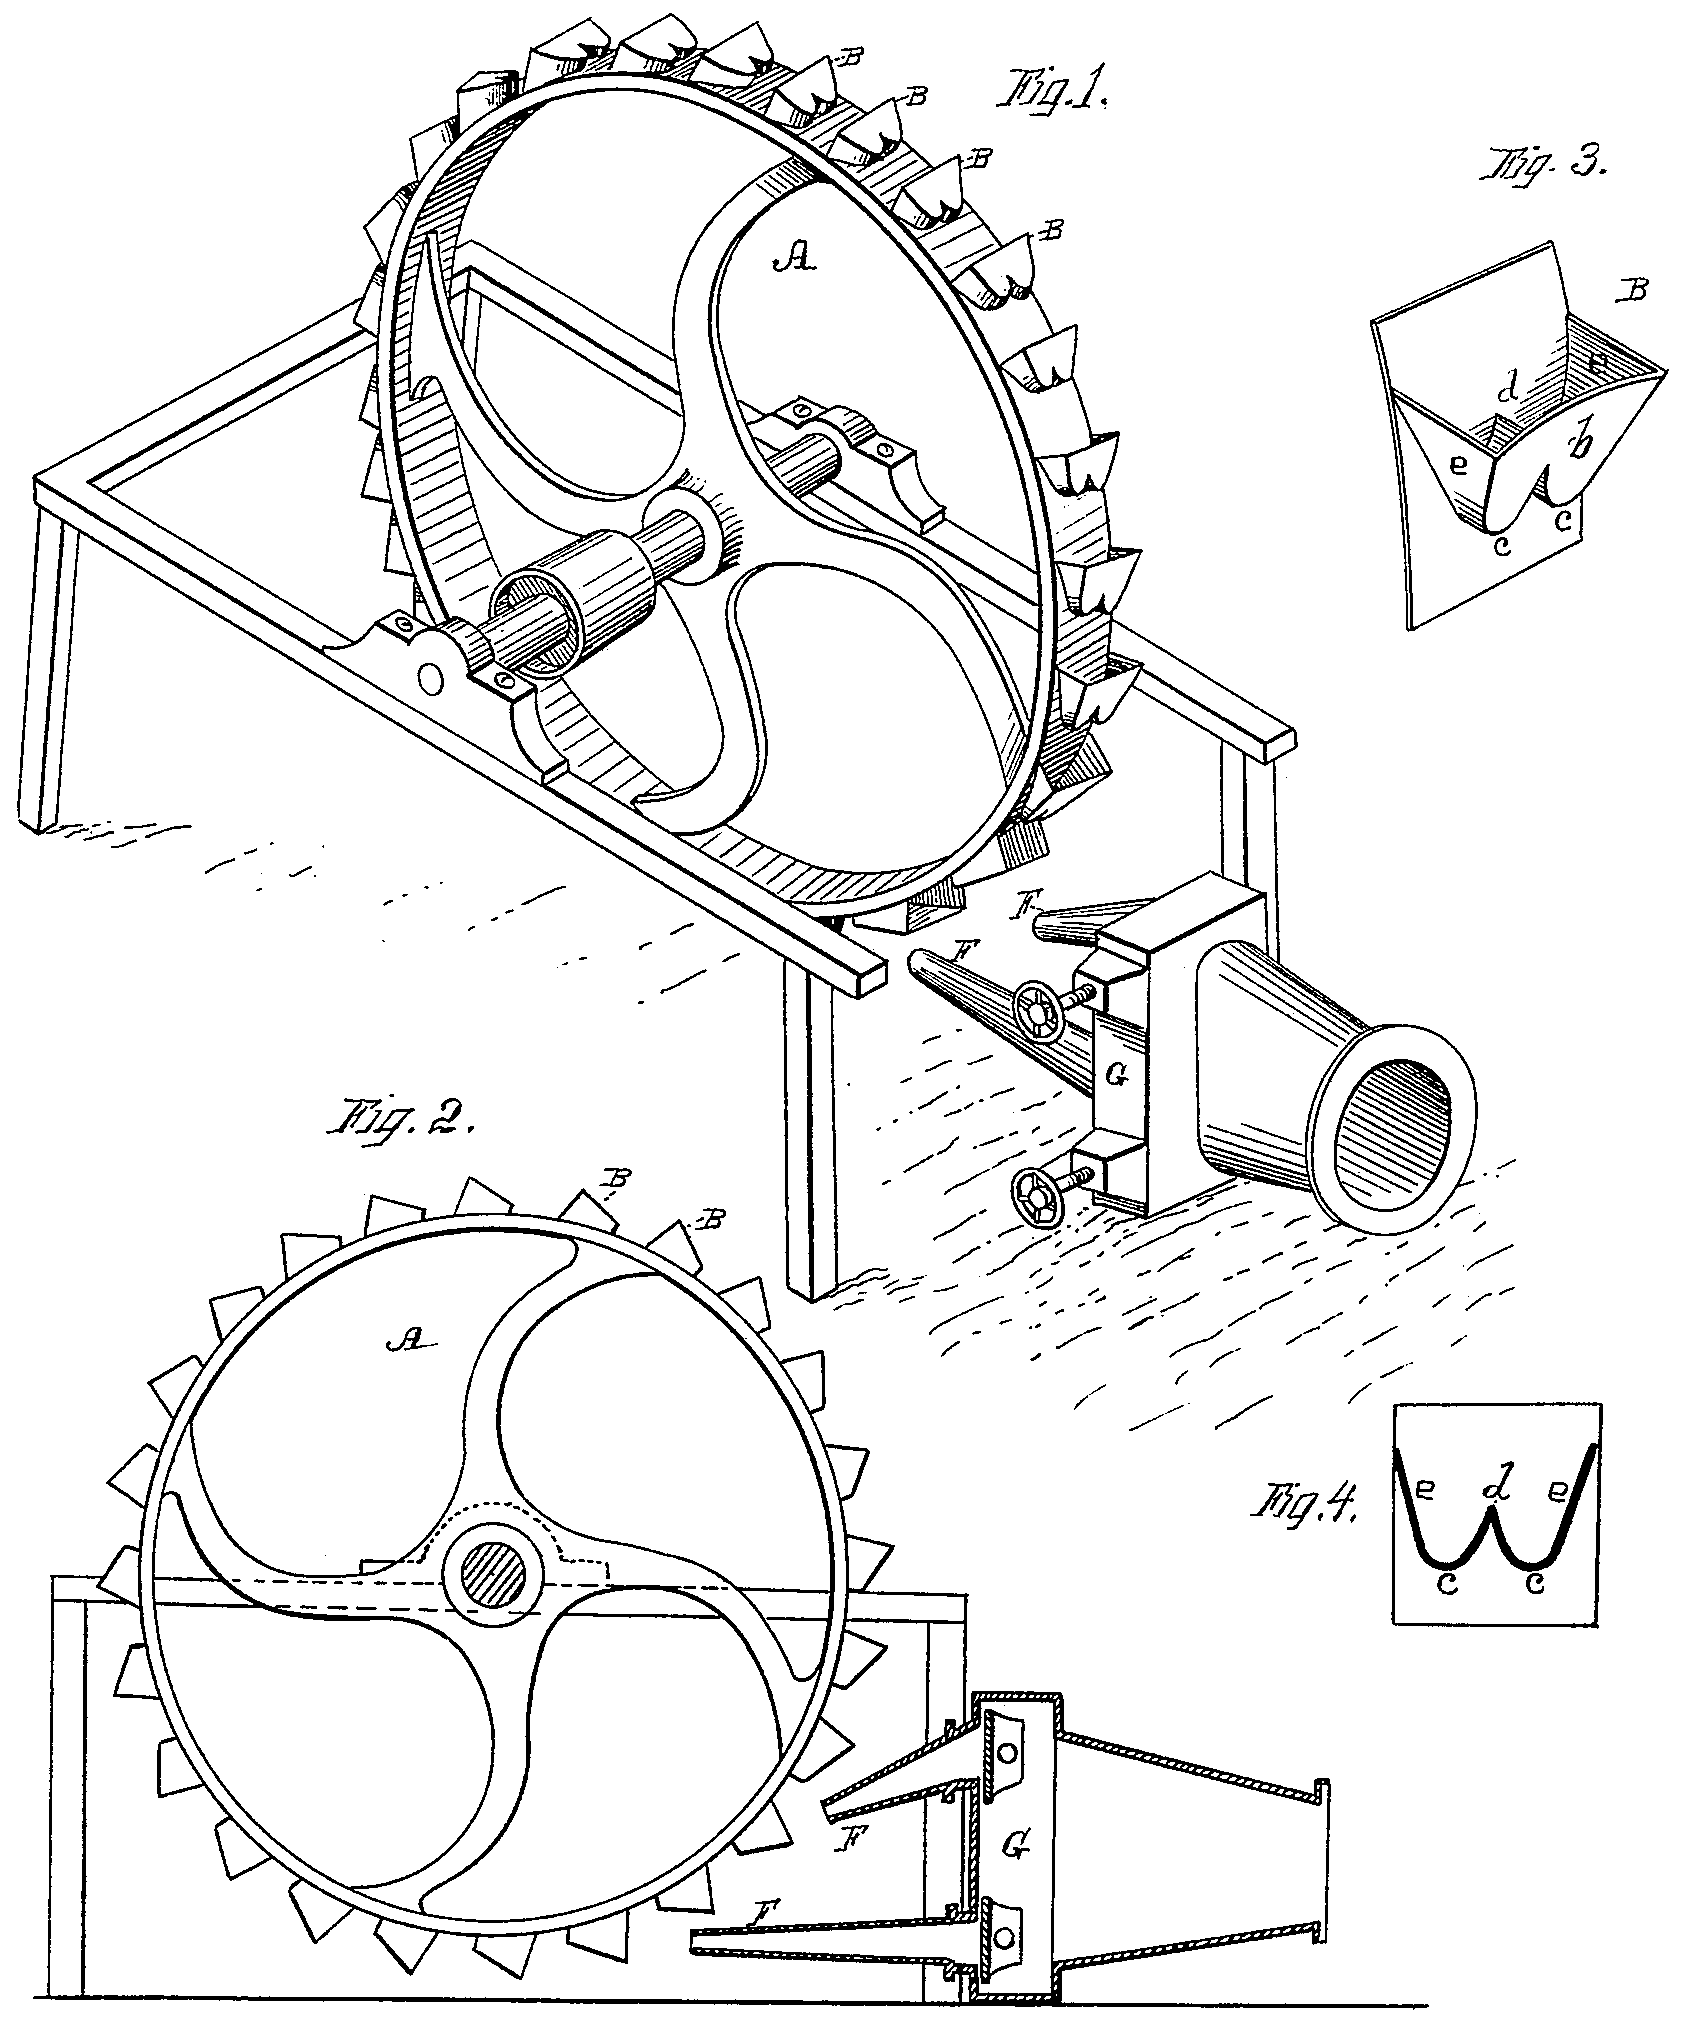 Final Project Robot Cd Rom Modification Electronics Projects Circuits Figure 4 Pelton Turbine Patent From 1880 Source Wikipedia